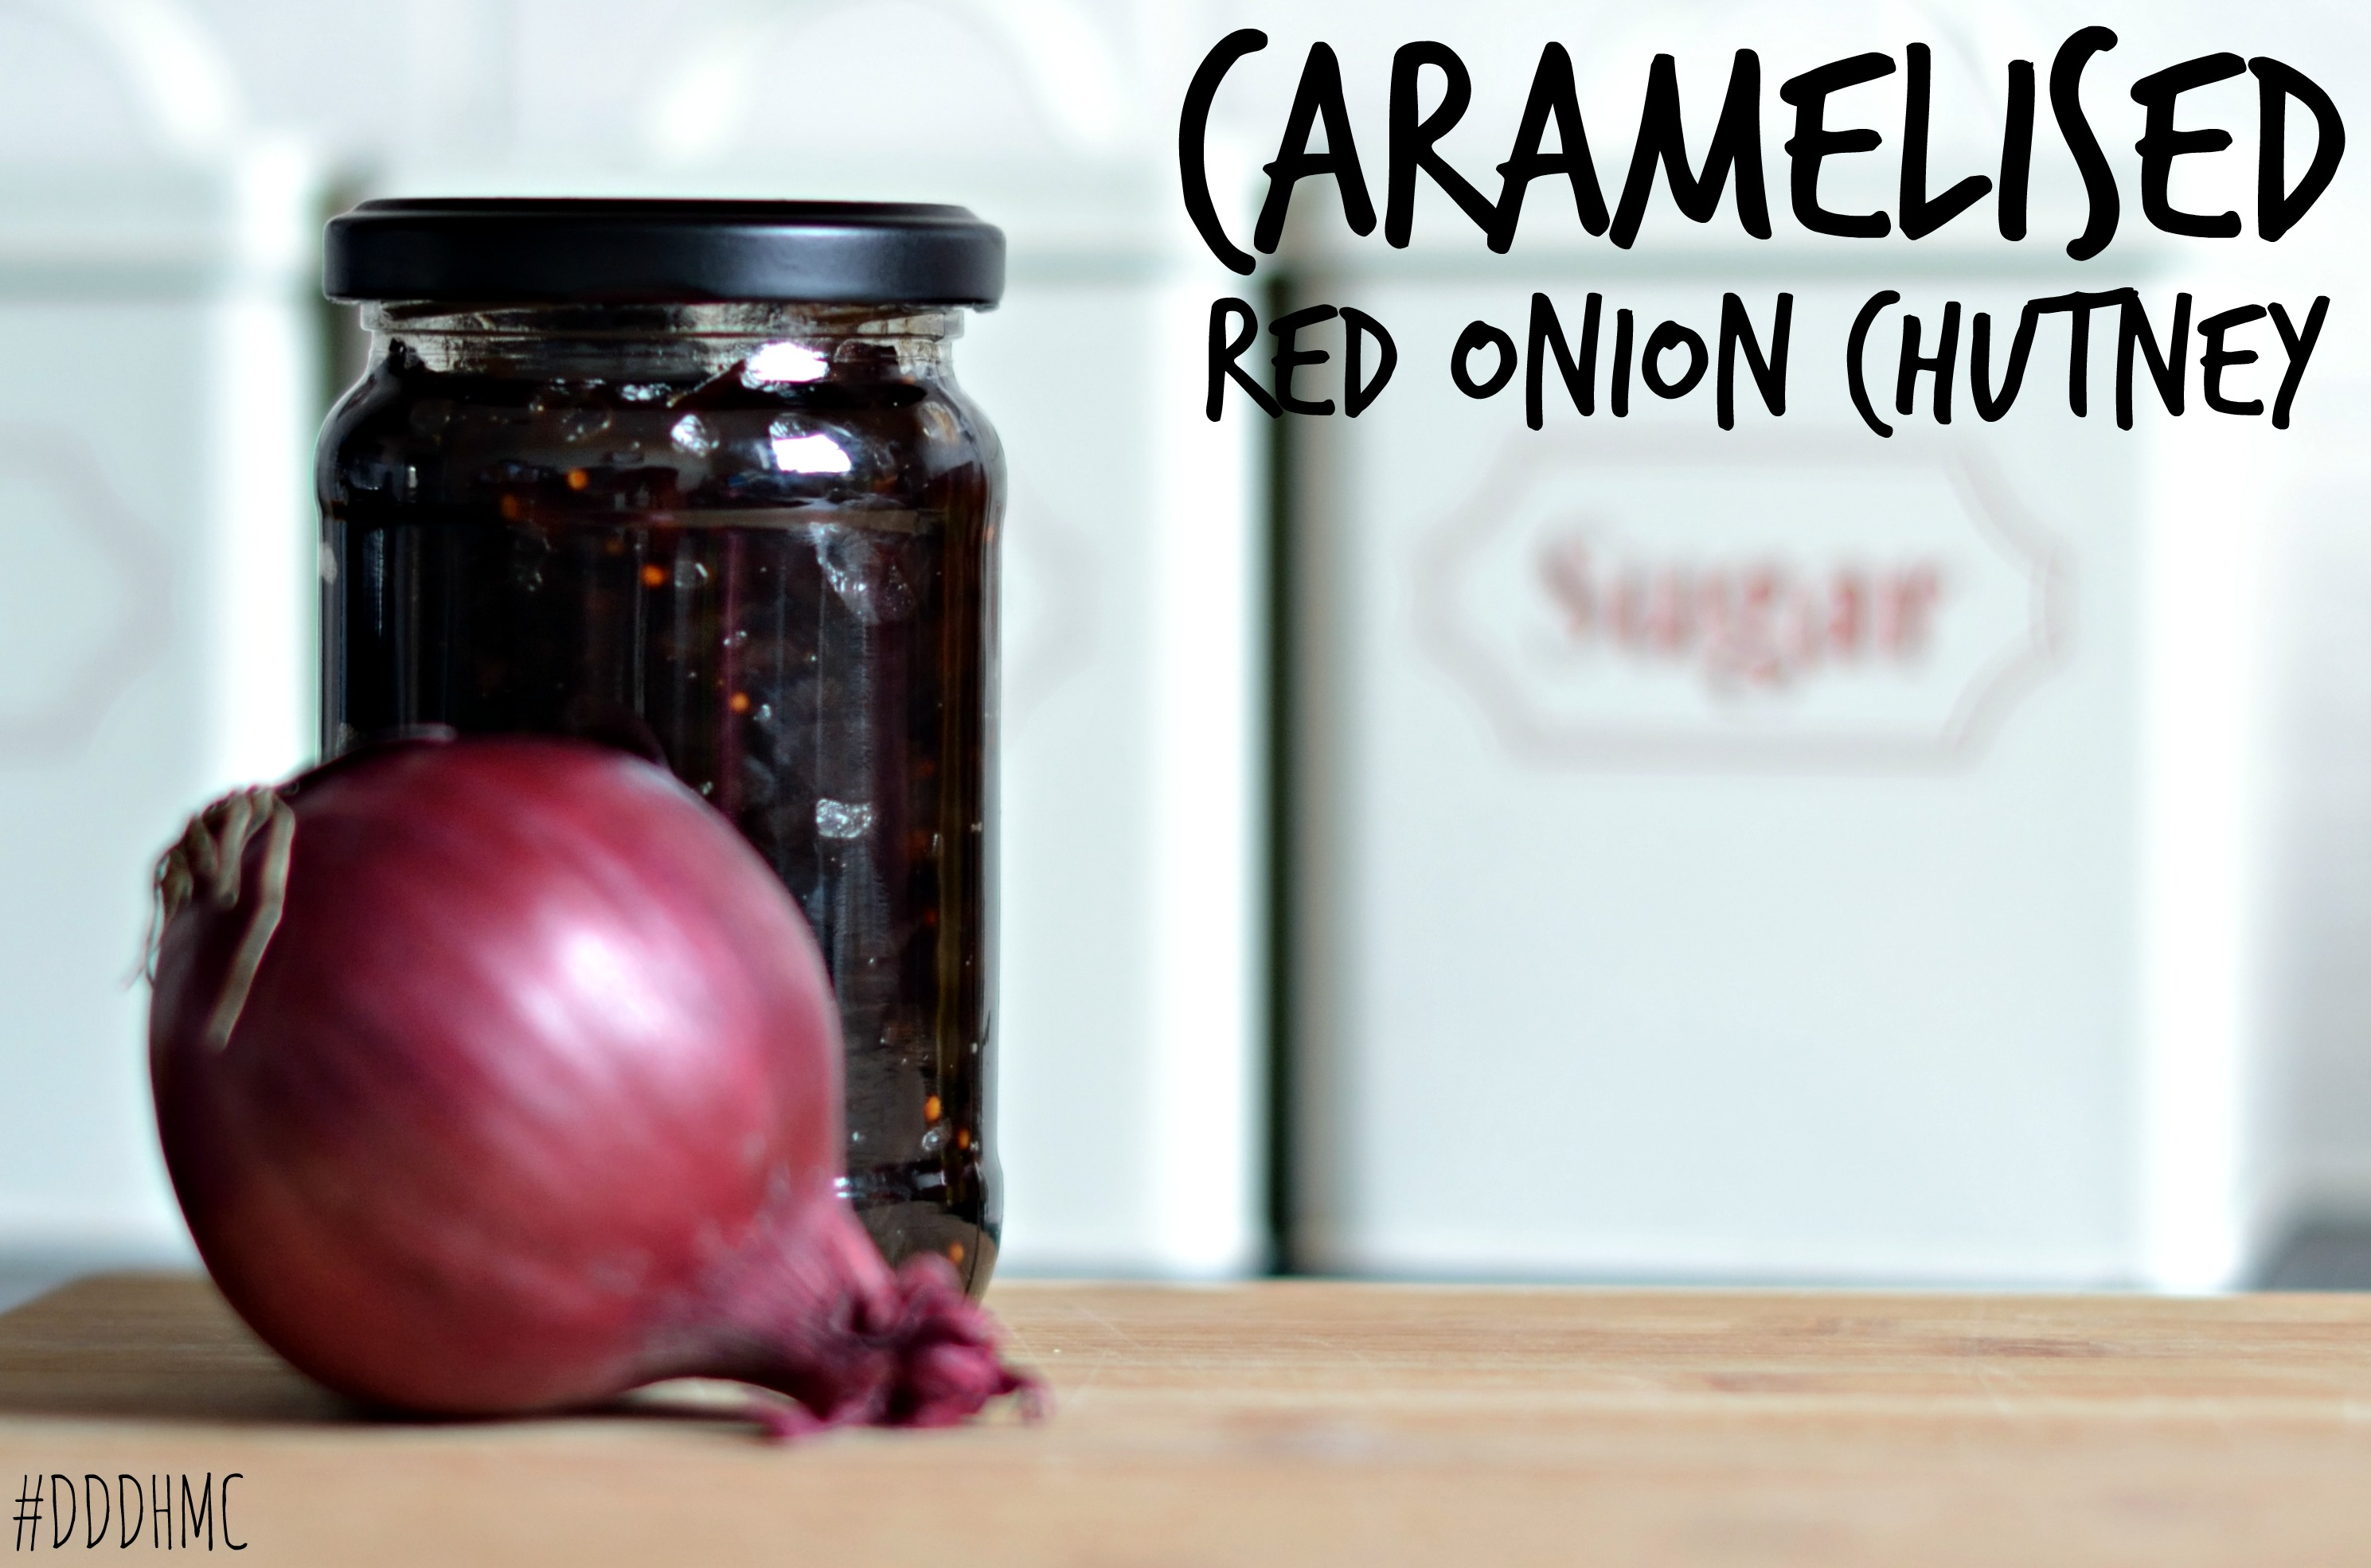 Caramelised Red Onion Chutney - Diddle Diddle Dumpling's Home Made Christmas